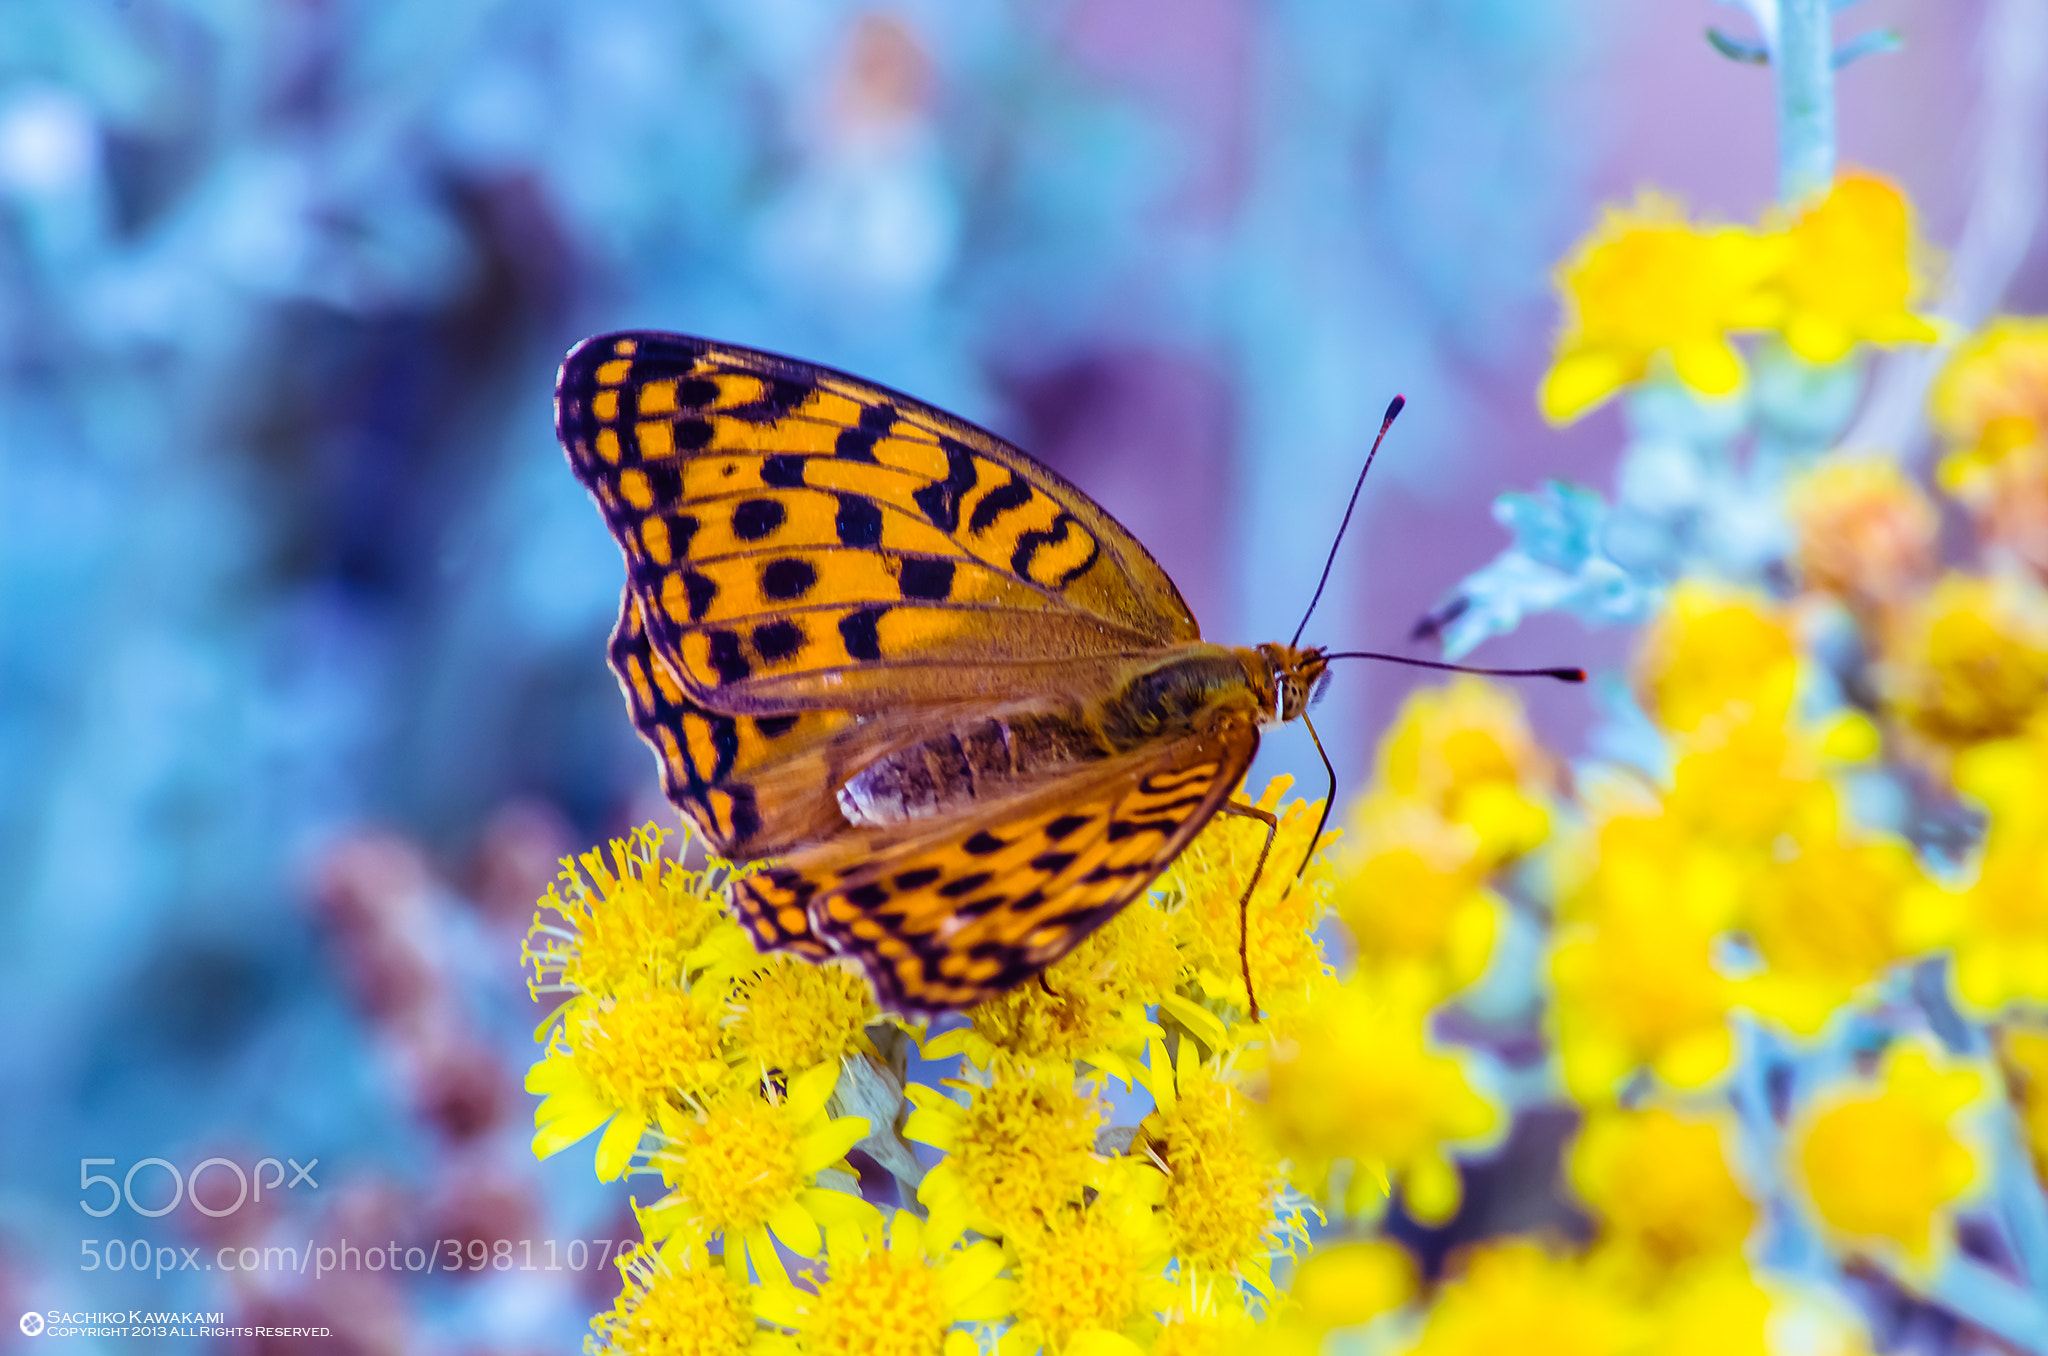 Photograph The weak insects by Sachiko Kawakami on 500px